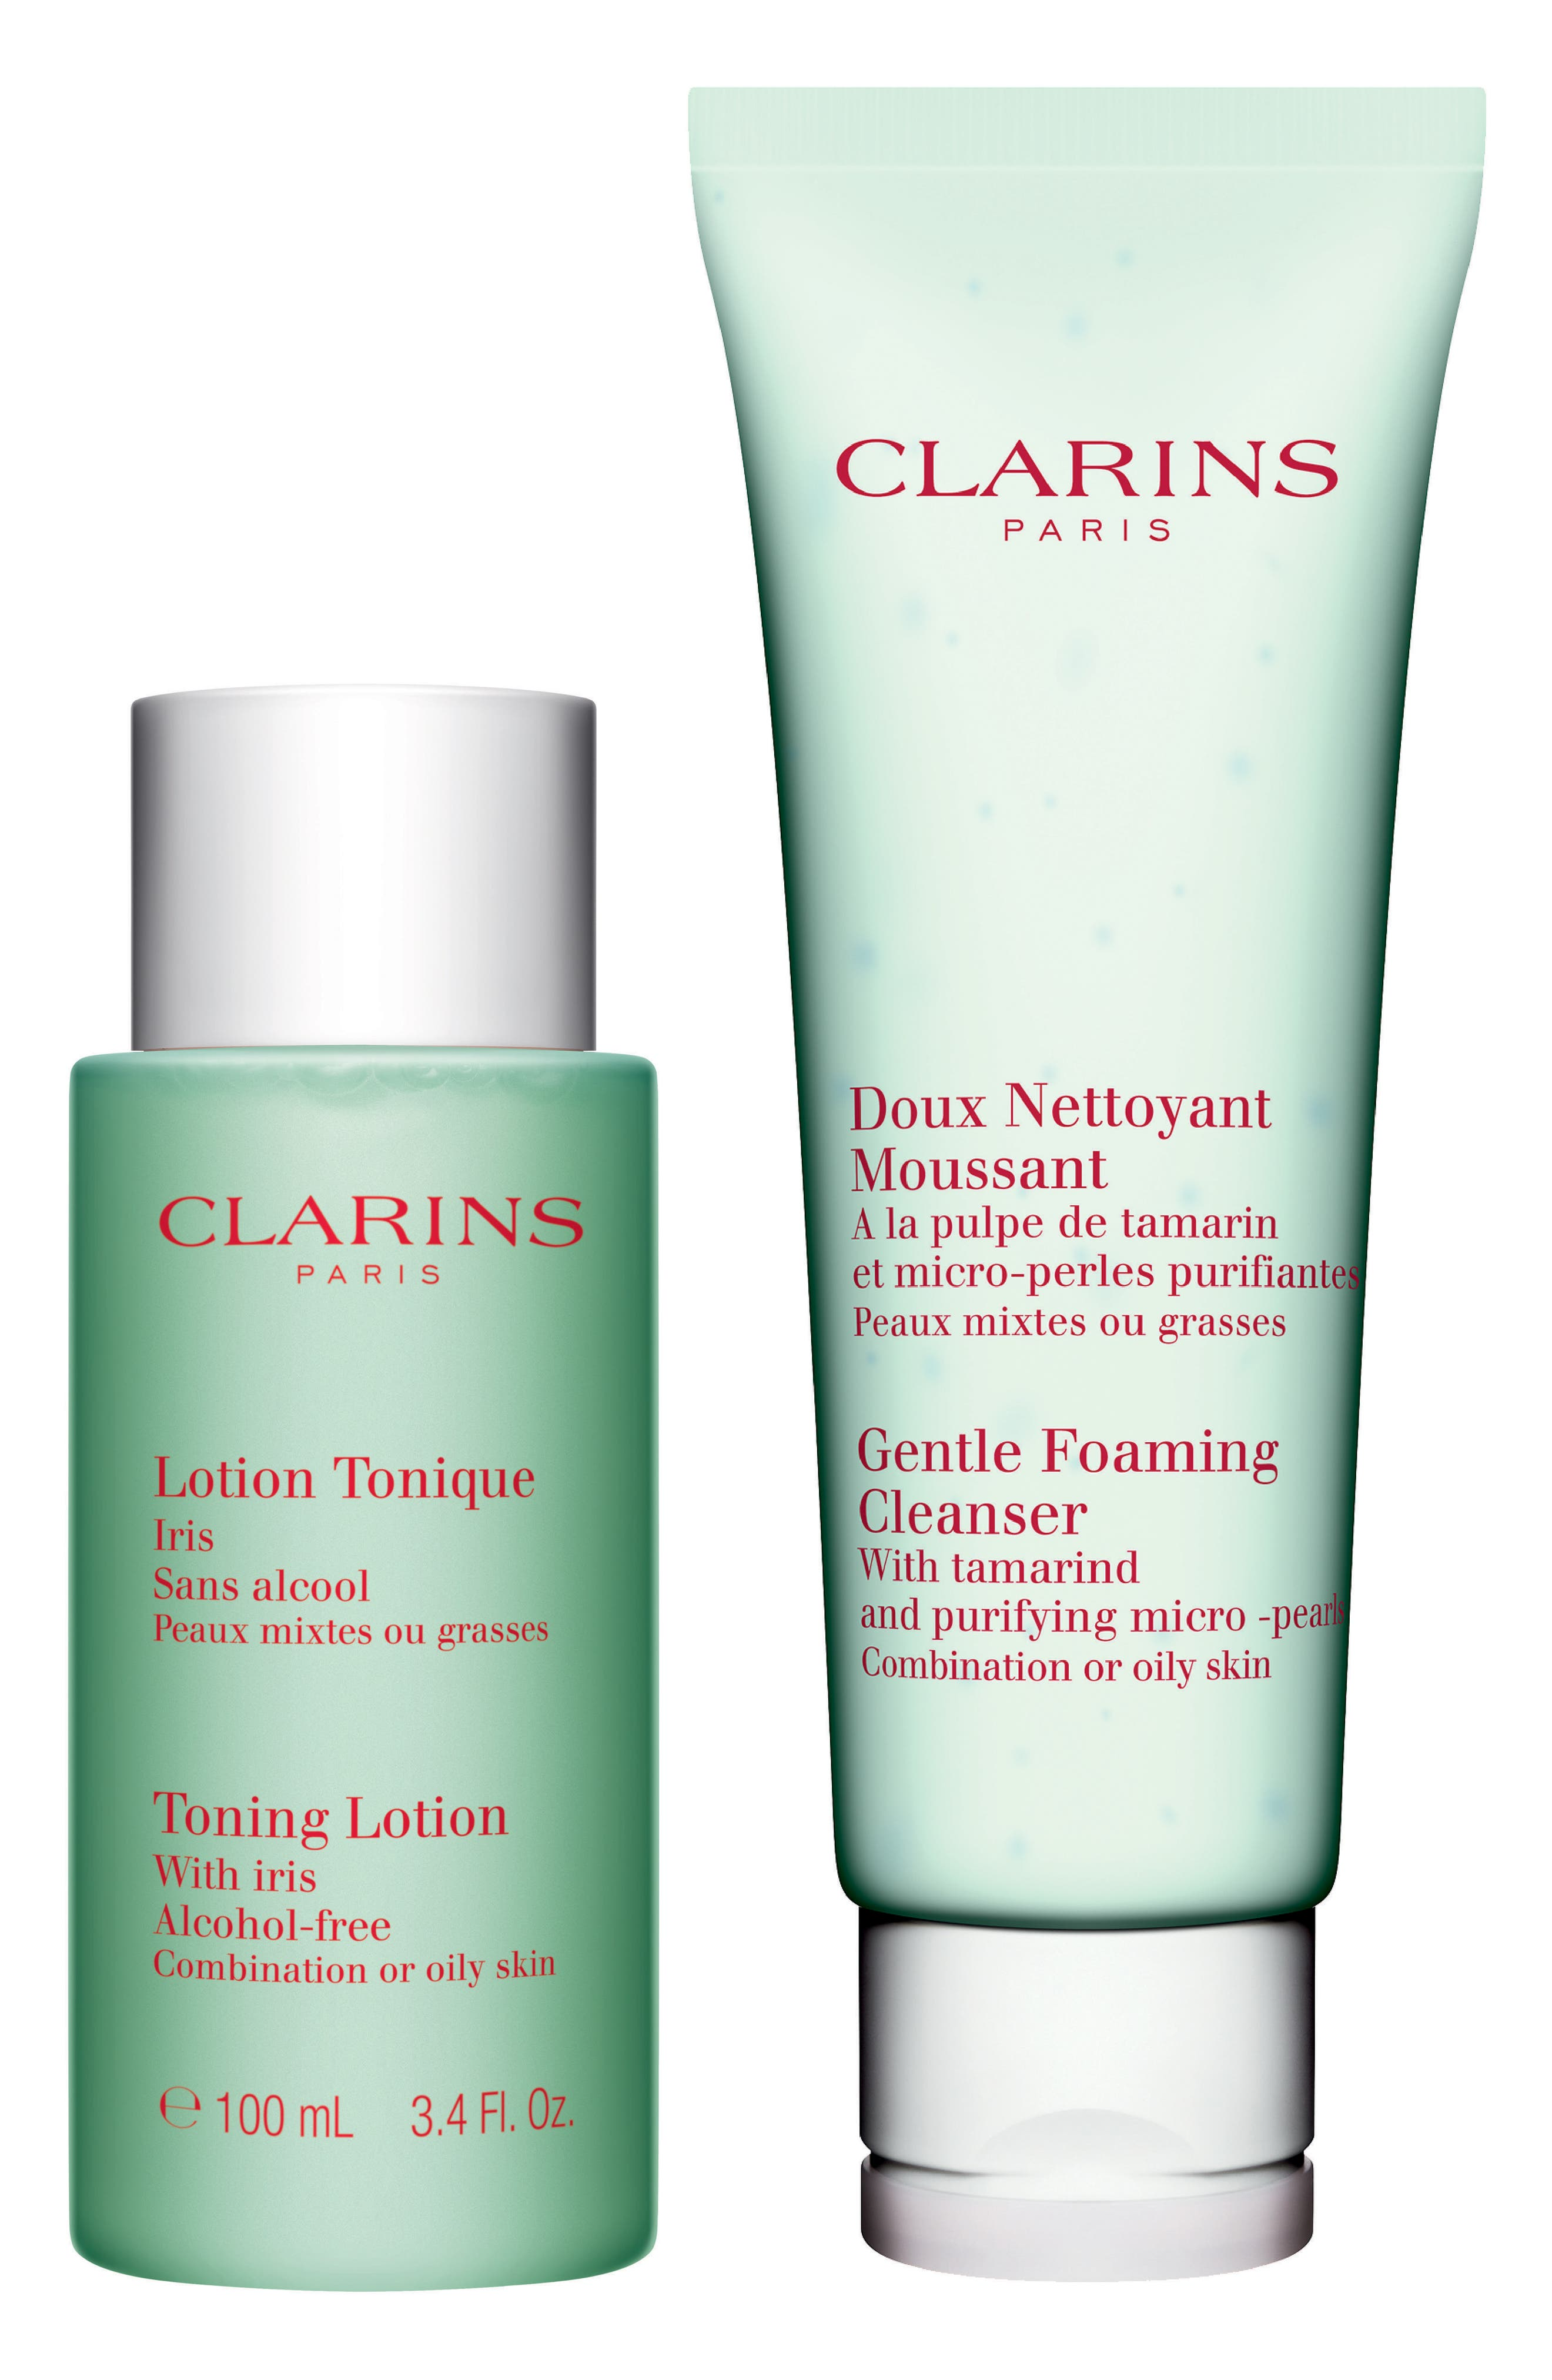 Alternate Image 1 Selected - Clarins Cleansing Essentials for Oil or Combination Skin Types